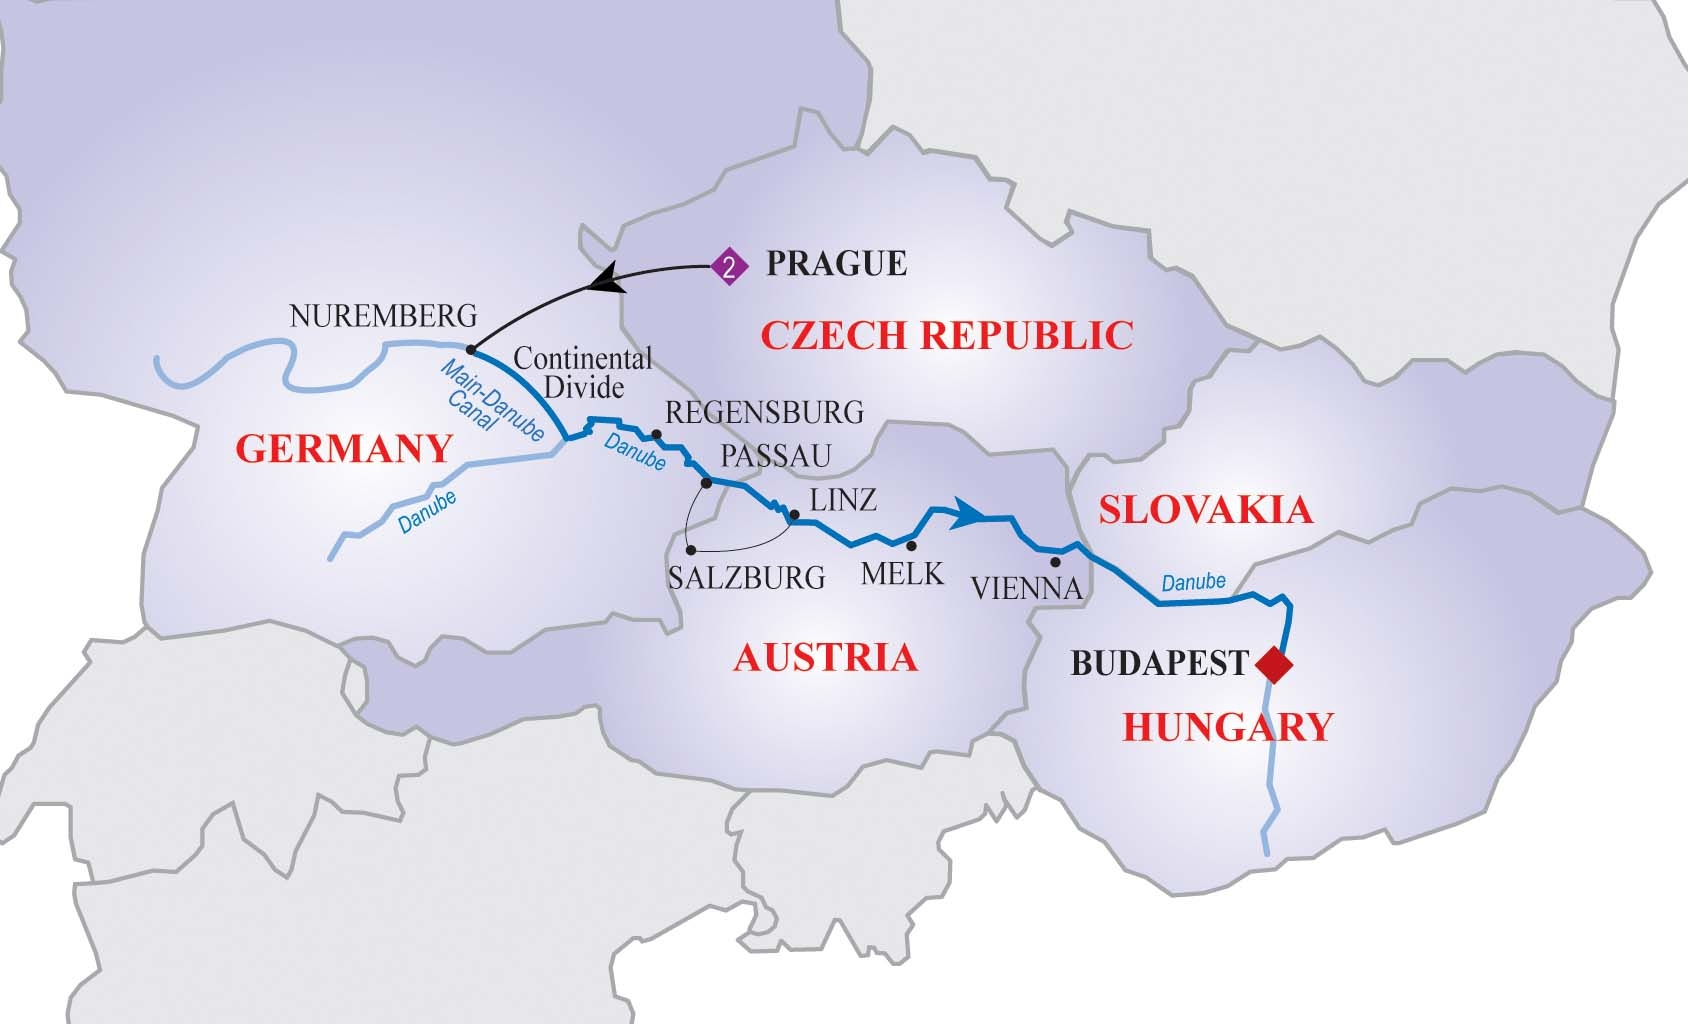 Danube River Cruise Map Danube River Cruise Map